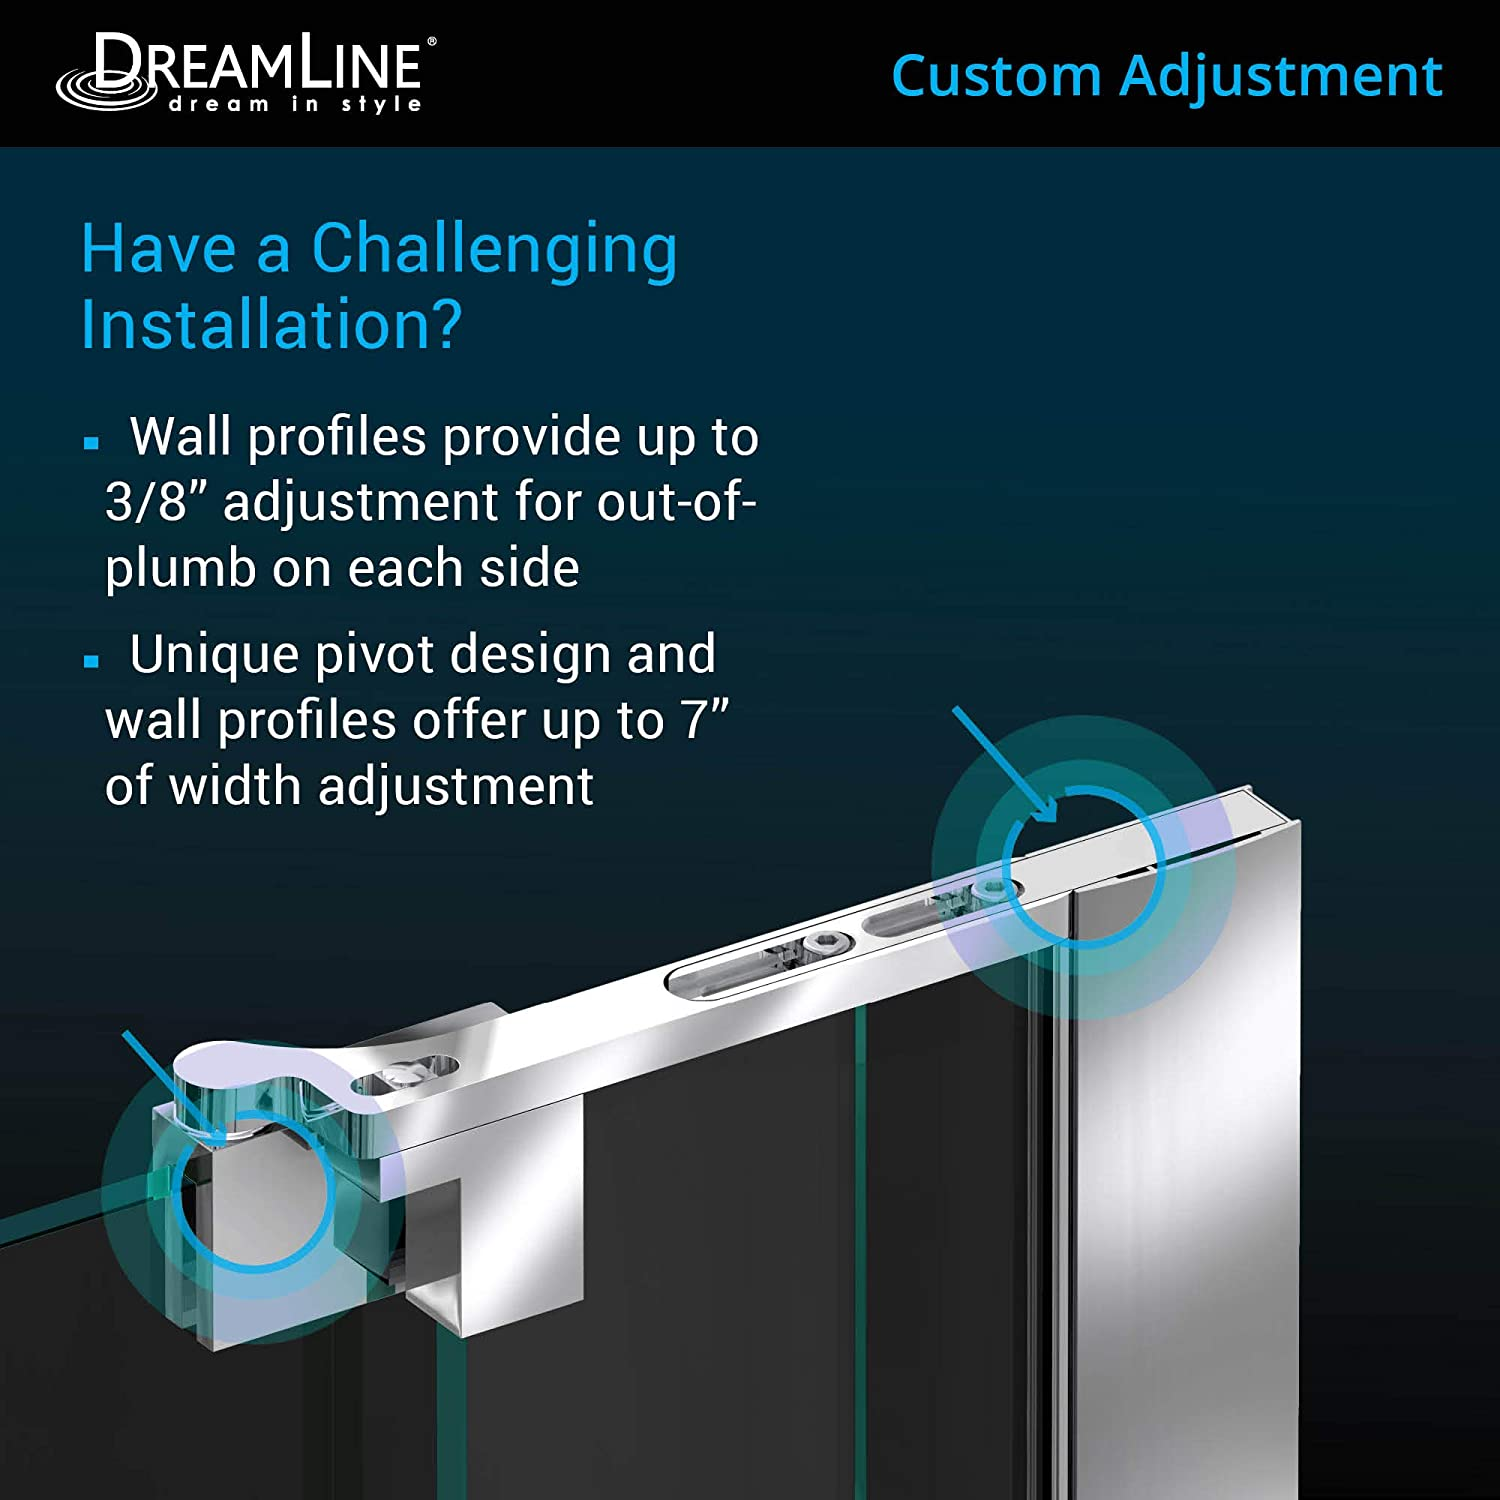 Dreamline Allure 65 66 In W X 73 In H Frameless Pivot Shower Door In Chrome Shdr 4265728 01 Amazon Com